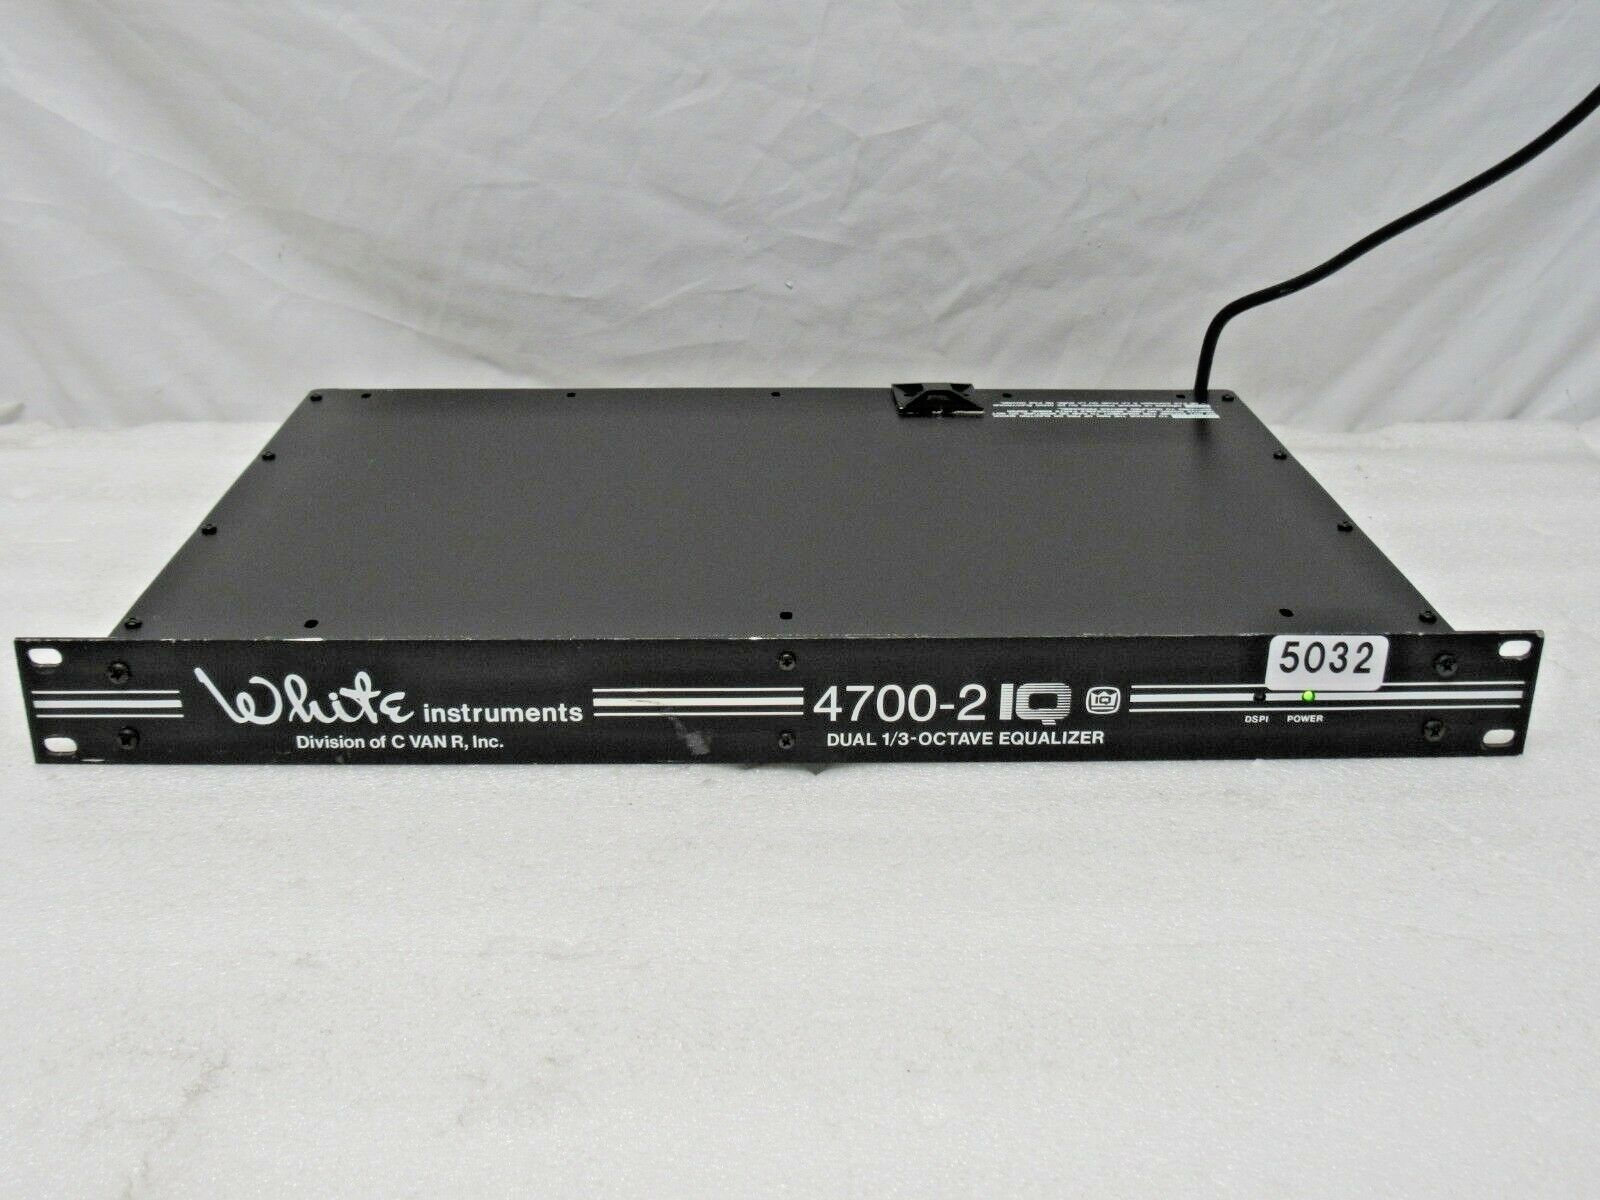 Weiß INSTRUMENTS 4700-2IQ DUAL 1 3-OCTAVE EQUALIZER (ONE)